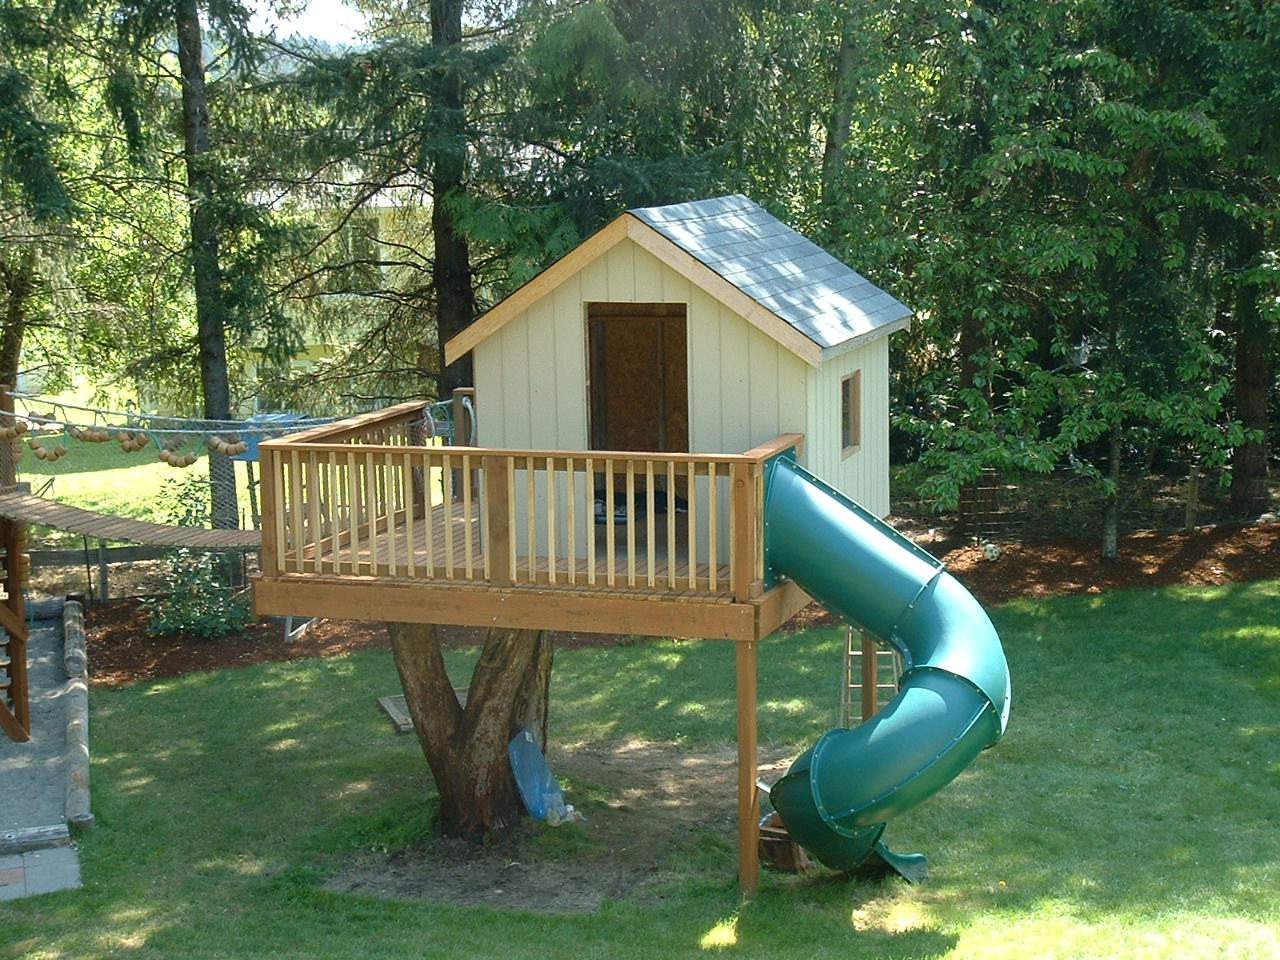 pictures of tree houses and play houses from around the world plans and build tips guides. Black Bedroom Furniture Sets. Home Design Ideas